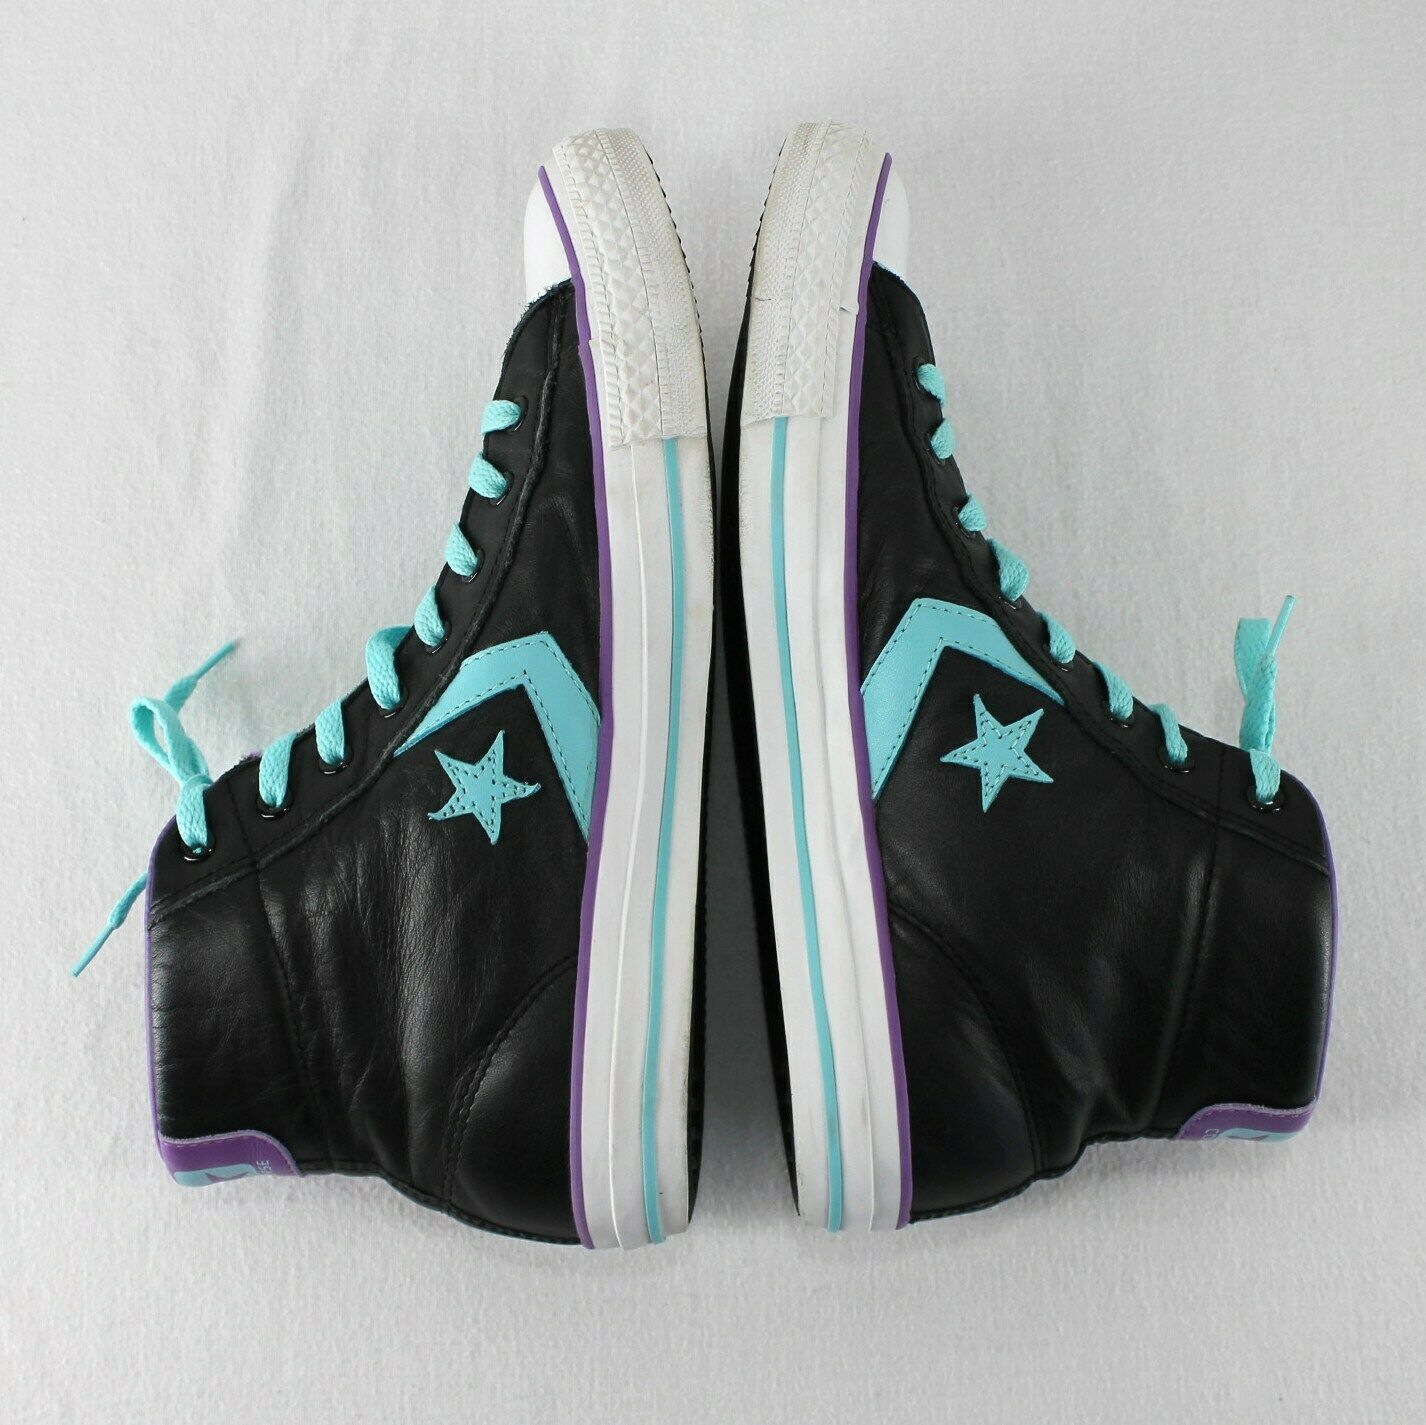 Converse All Star Leather High Top Shoes Mens 9 Womens 11 Black Blue Purple image 7